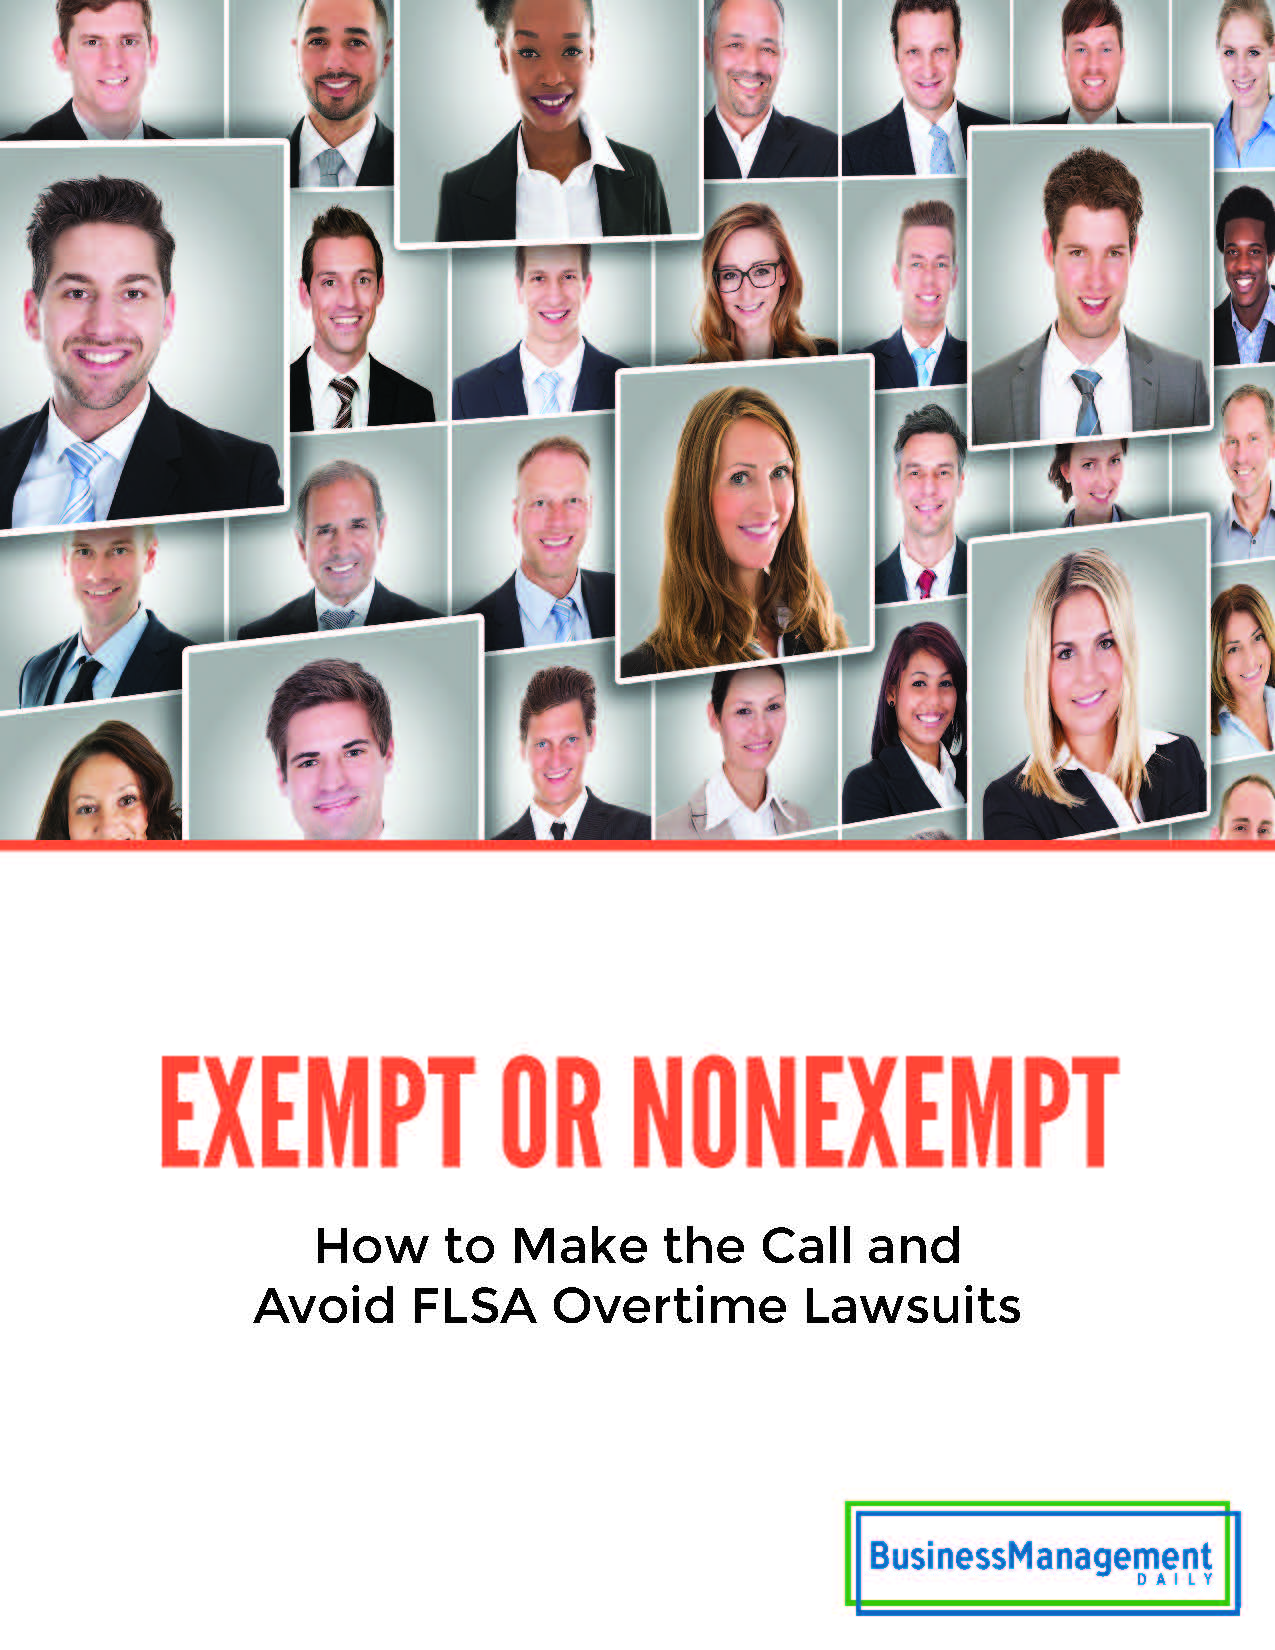 Exempt or Nonexempt? How to Make the Call and Avoid FLSA Overtime Lawsuits